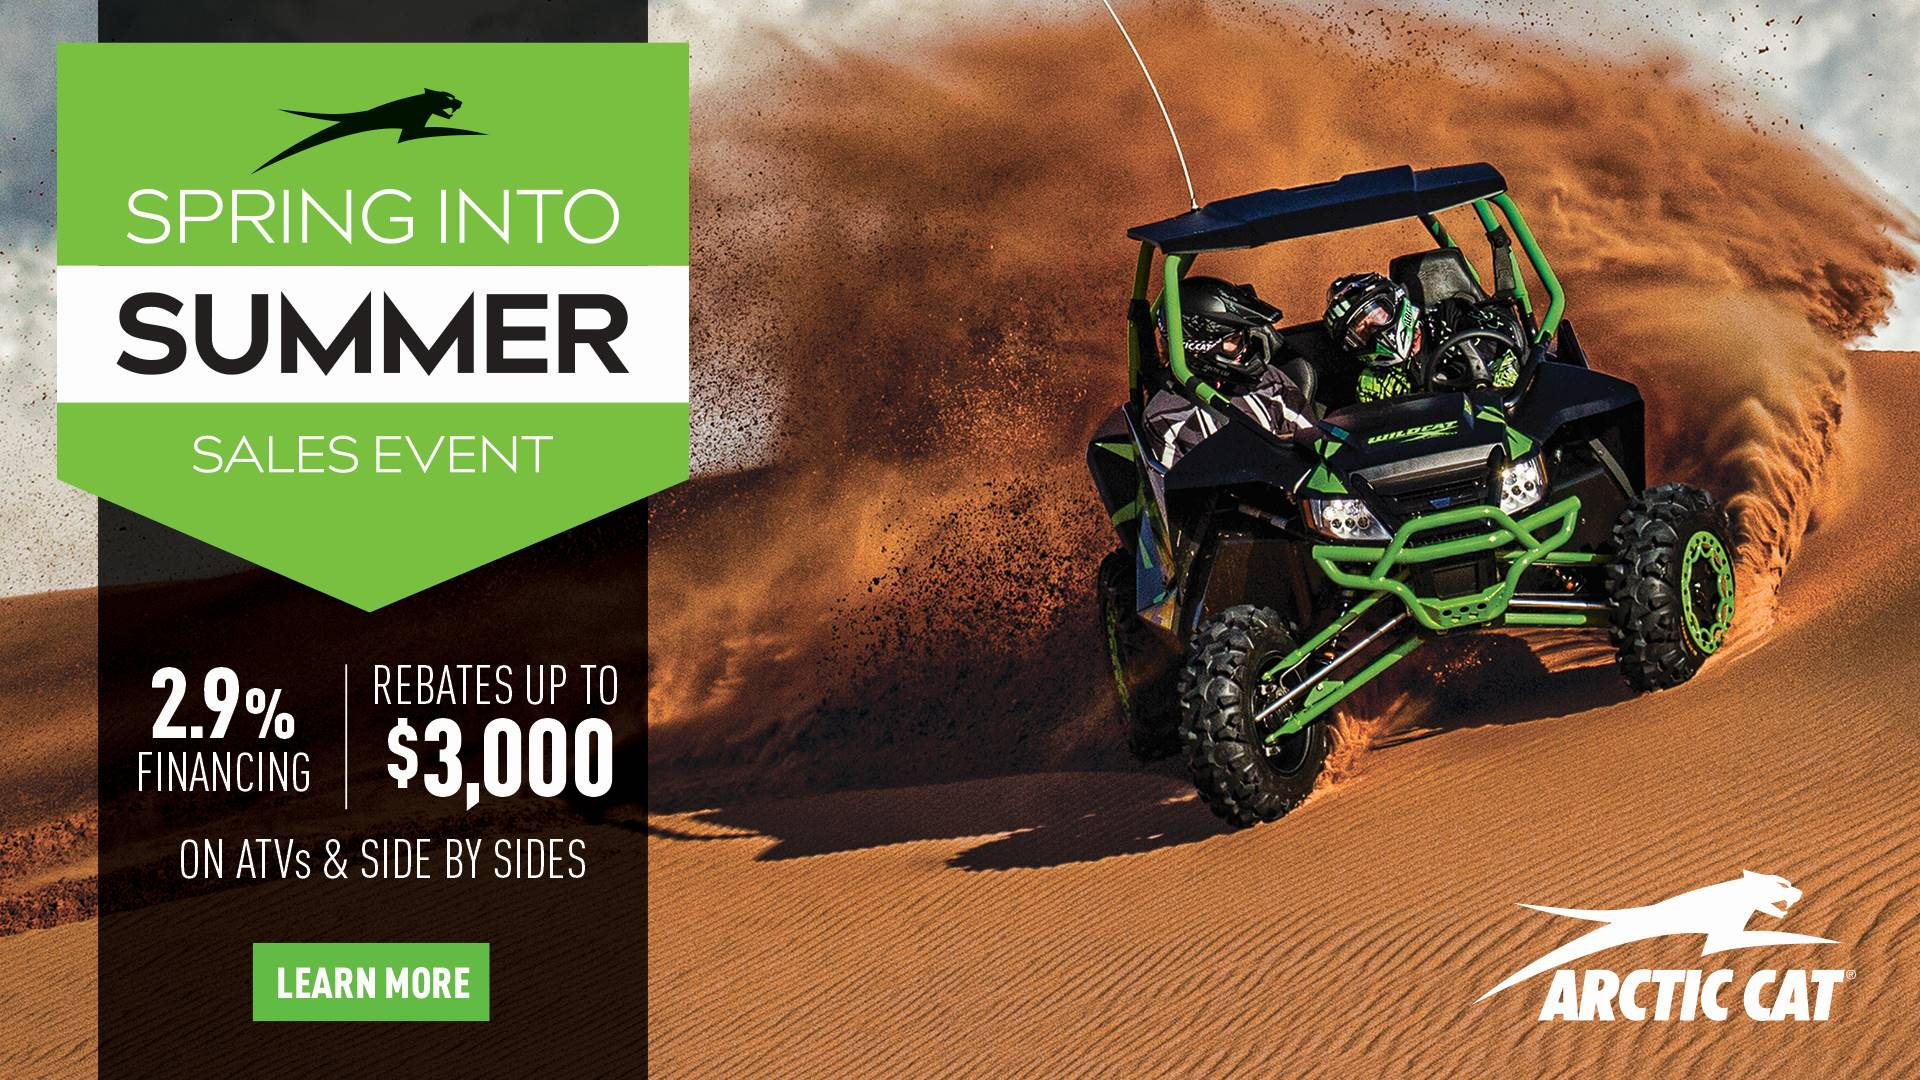 Arctic Cat - Spring Into Summer Sales Event - SxSs Promotional Pricing - MY2017 & MY2015